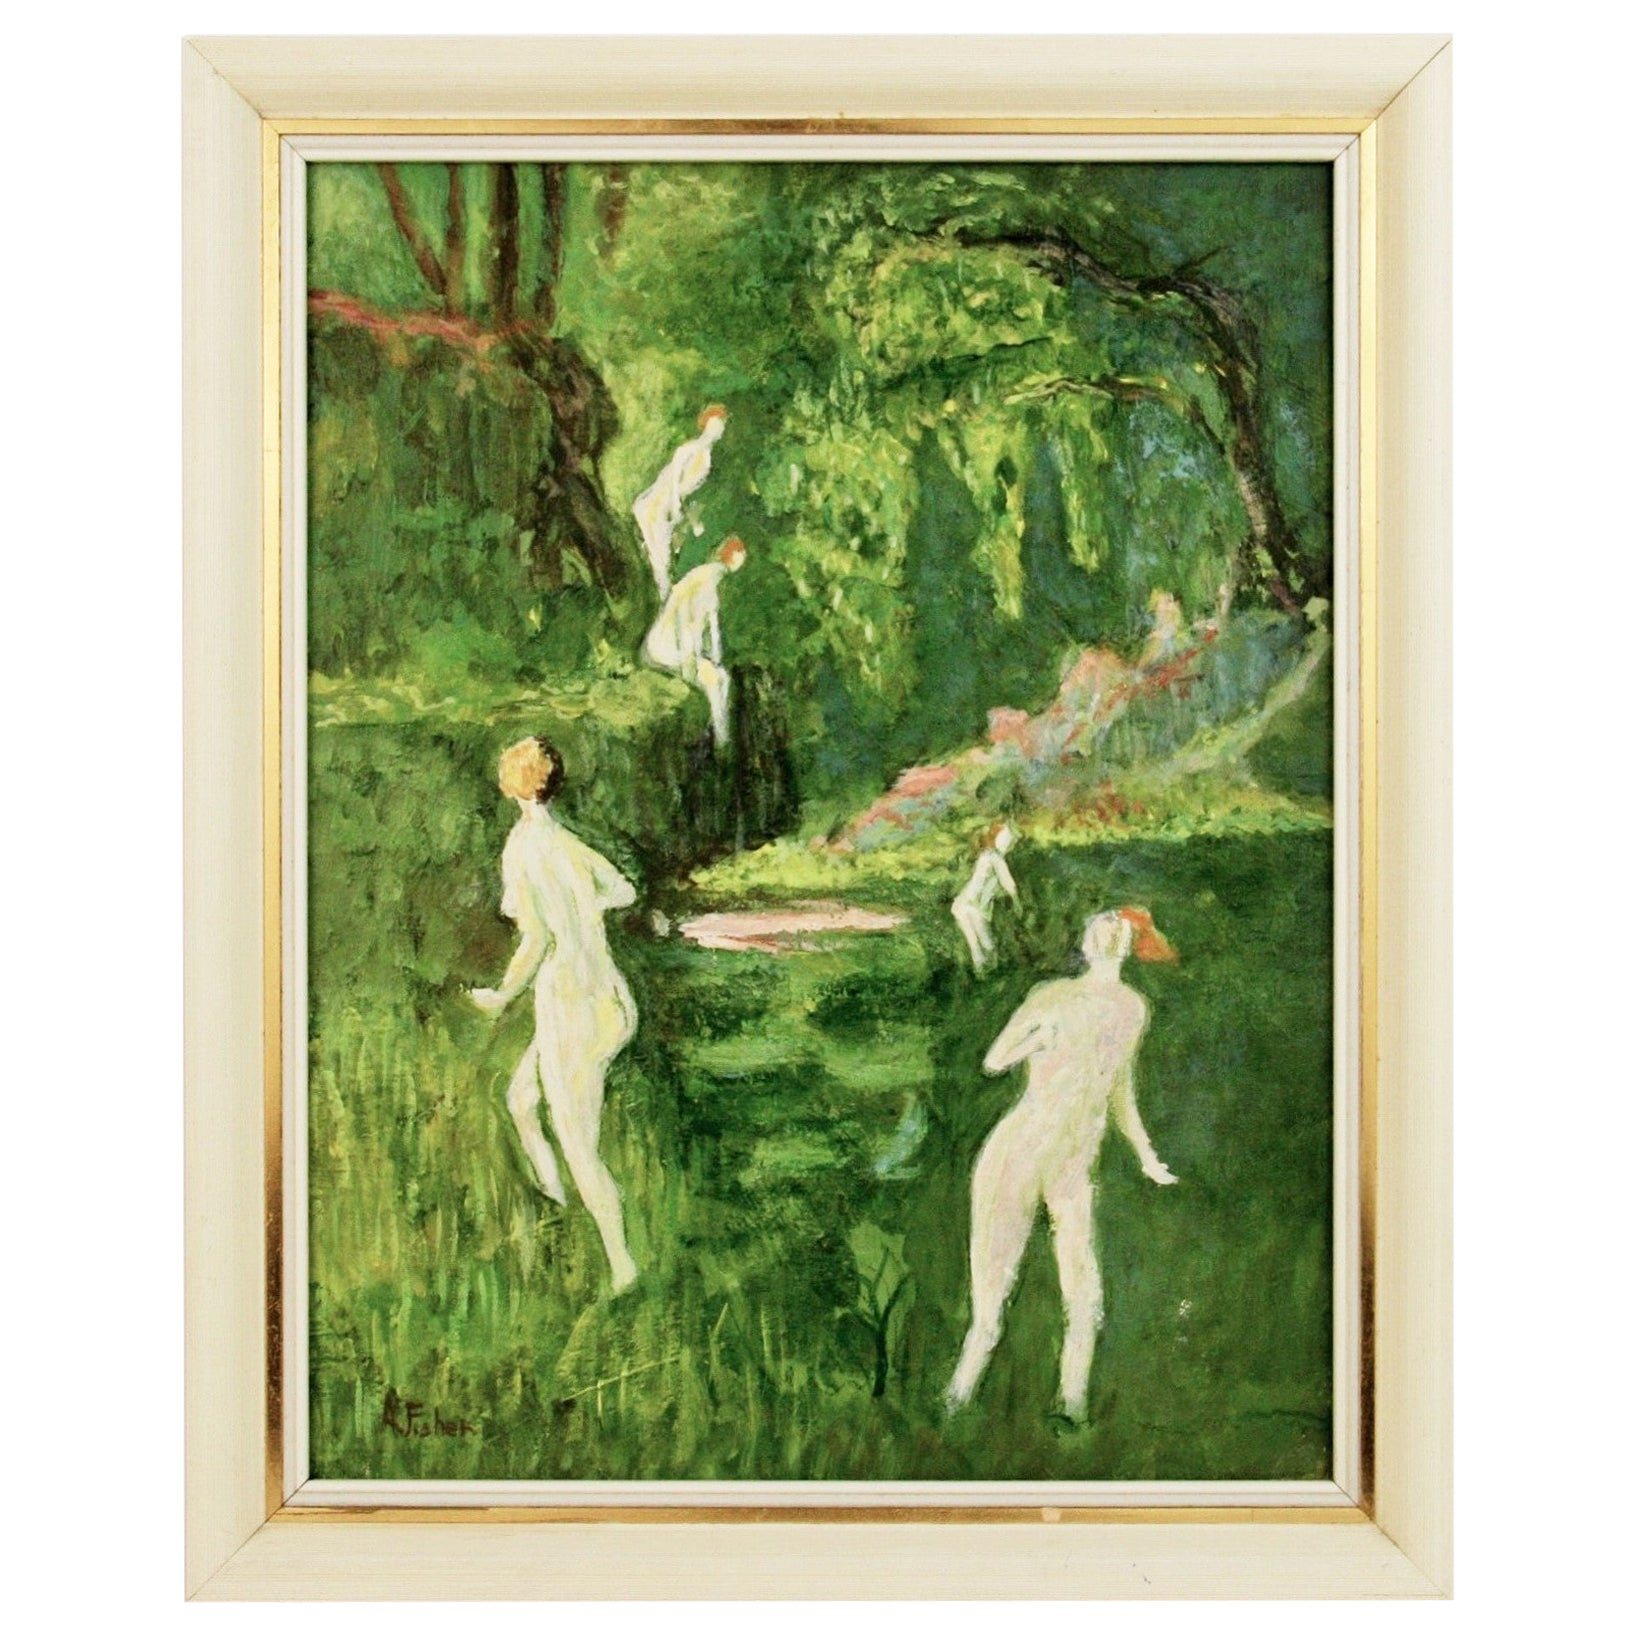 Nude Bathers in a Forest Stream